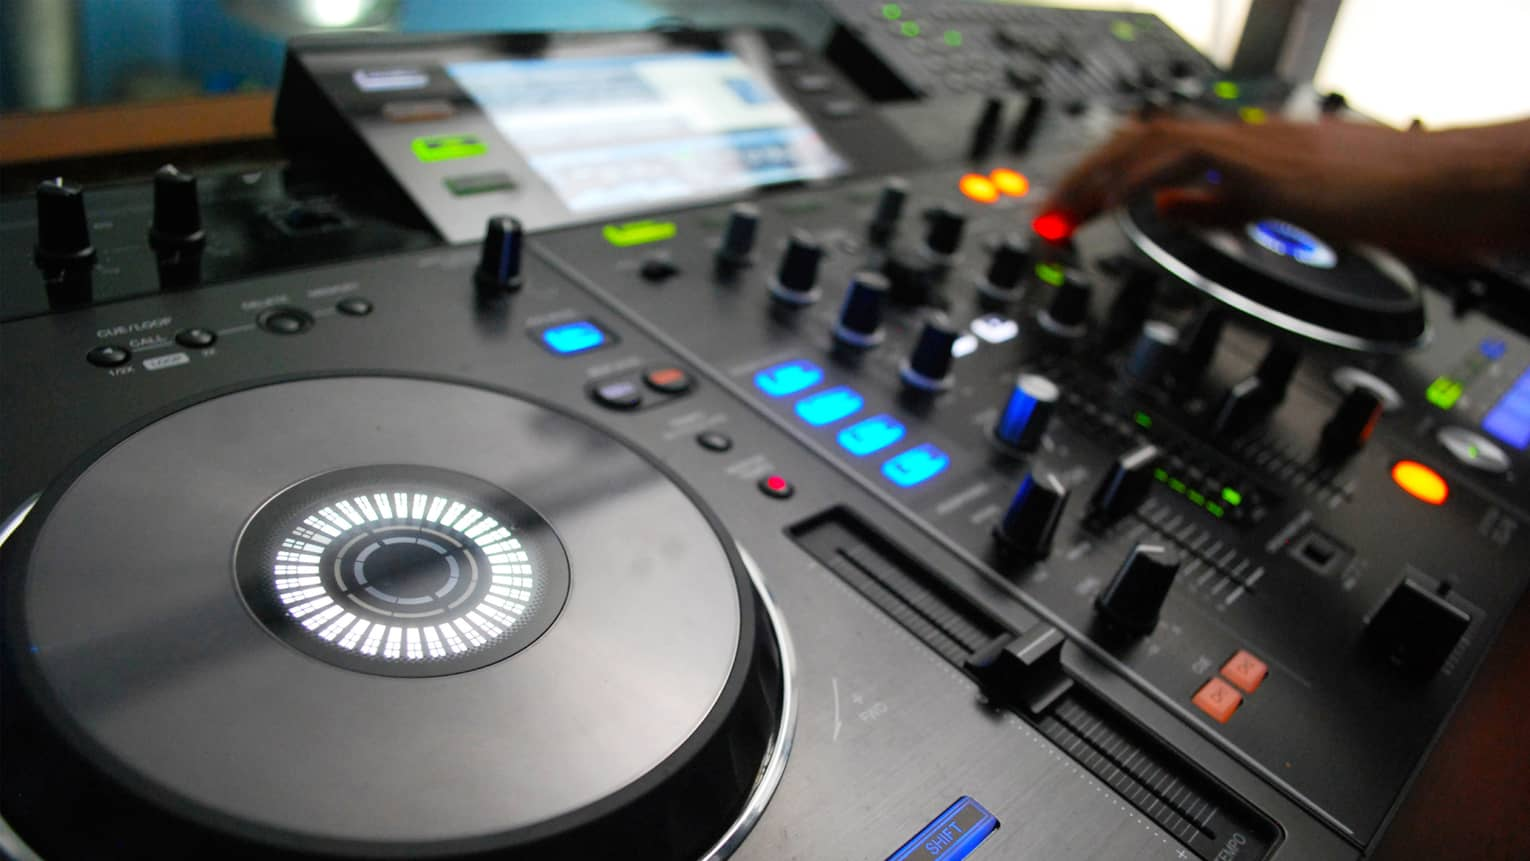 Close-up of DJ console discs, buttons, lights, hand adjusting levels